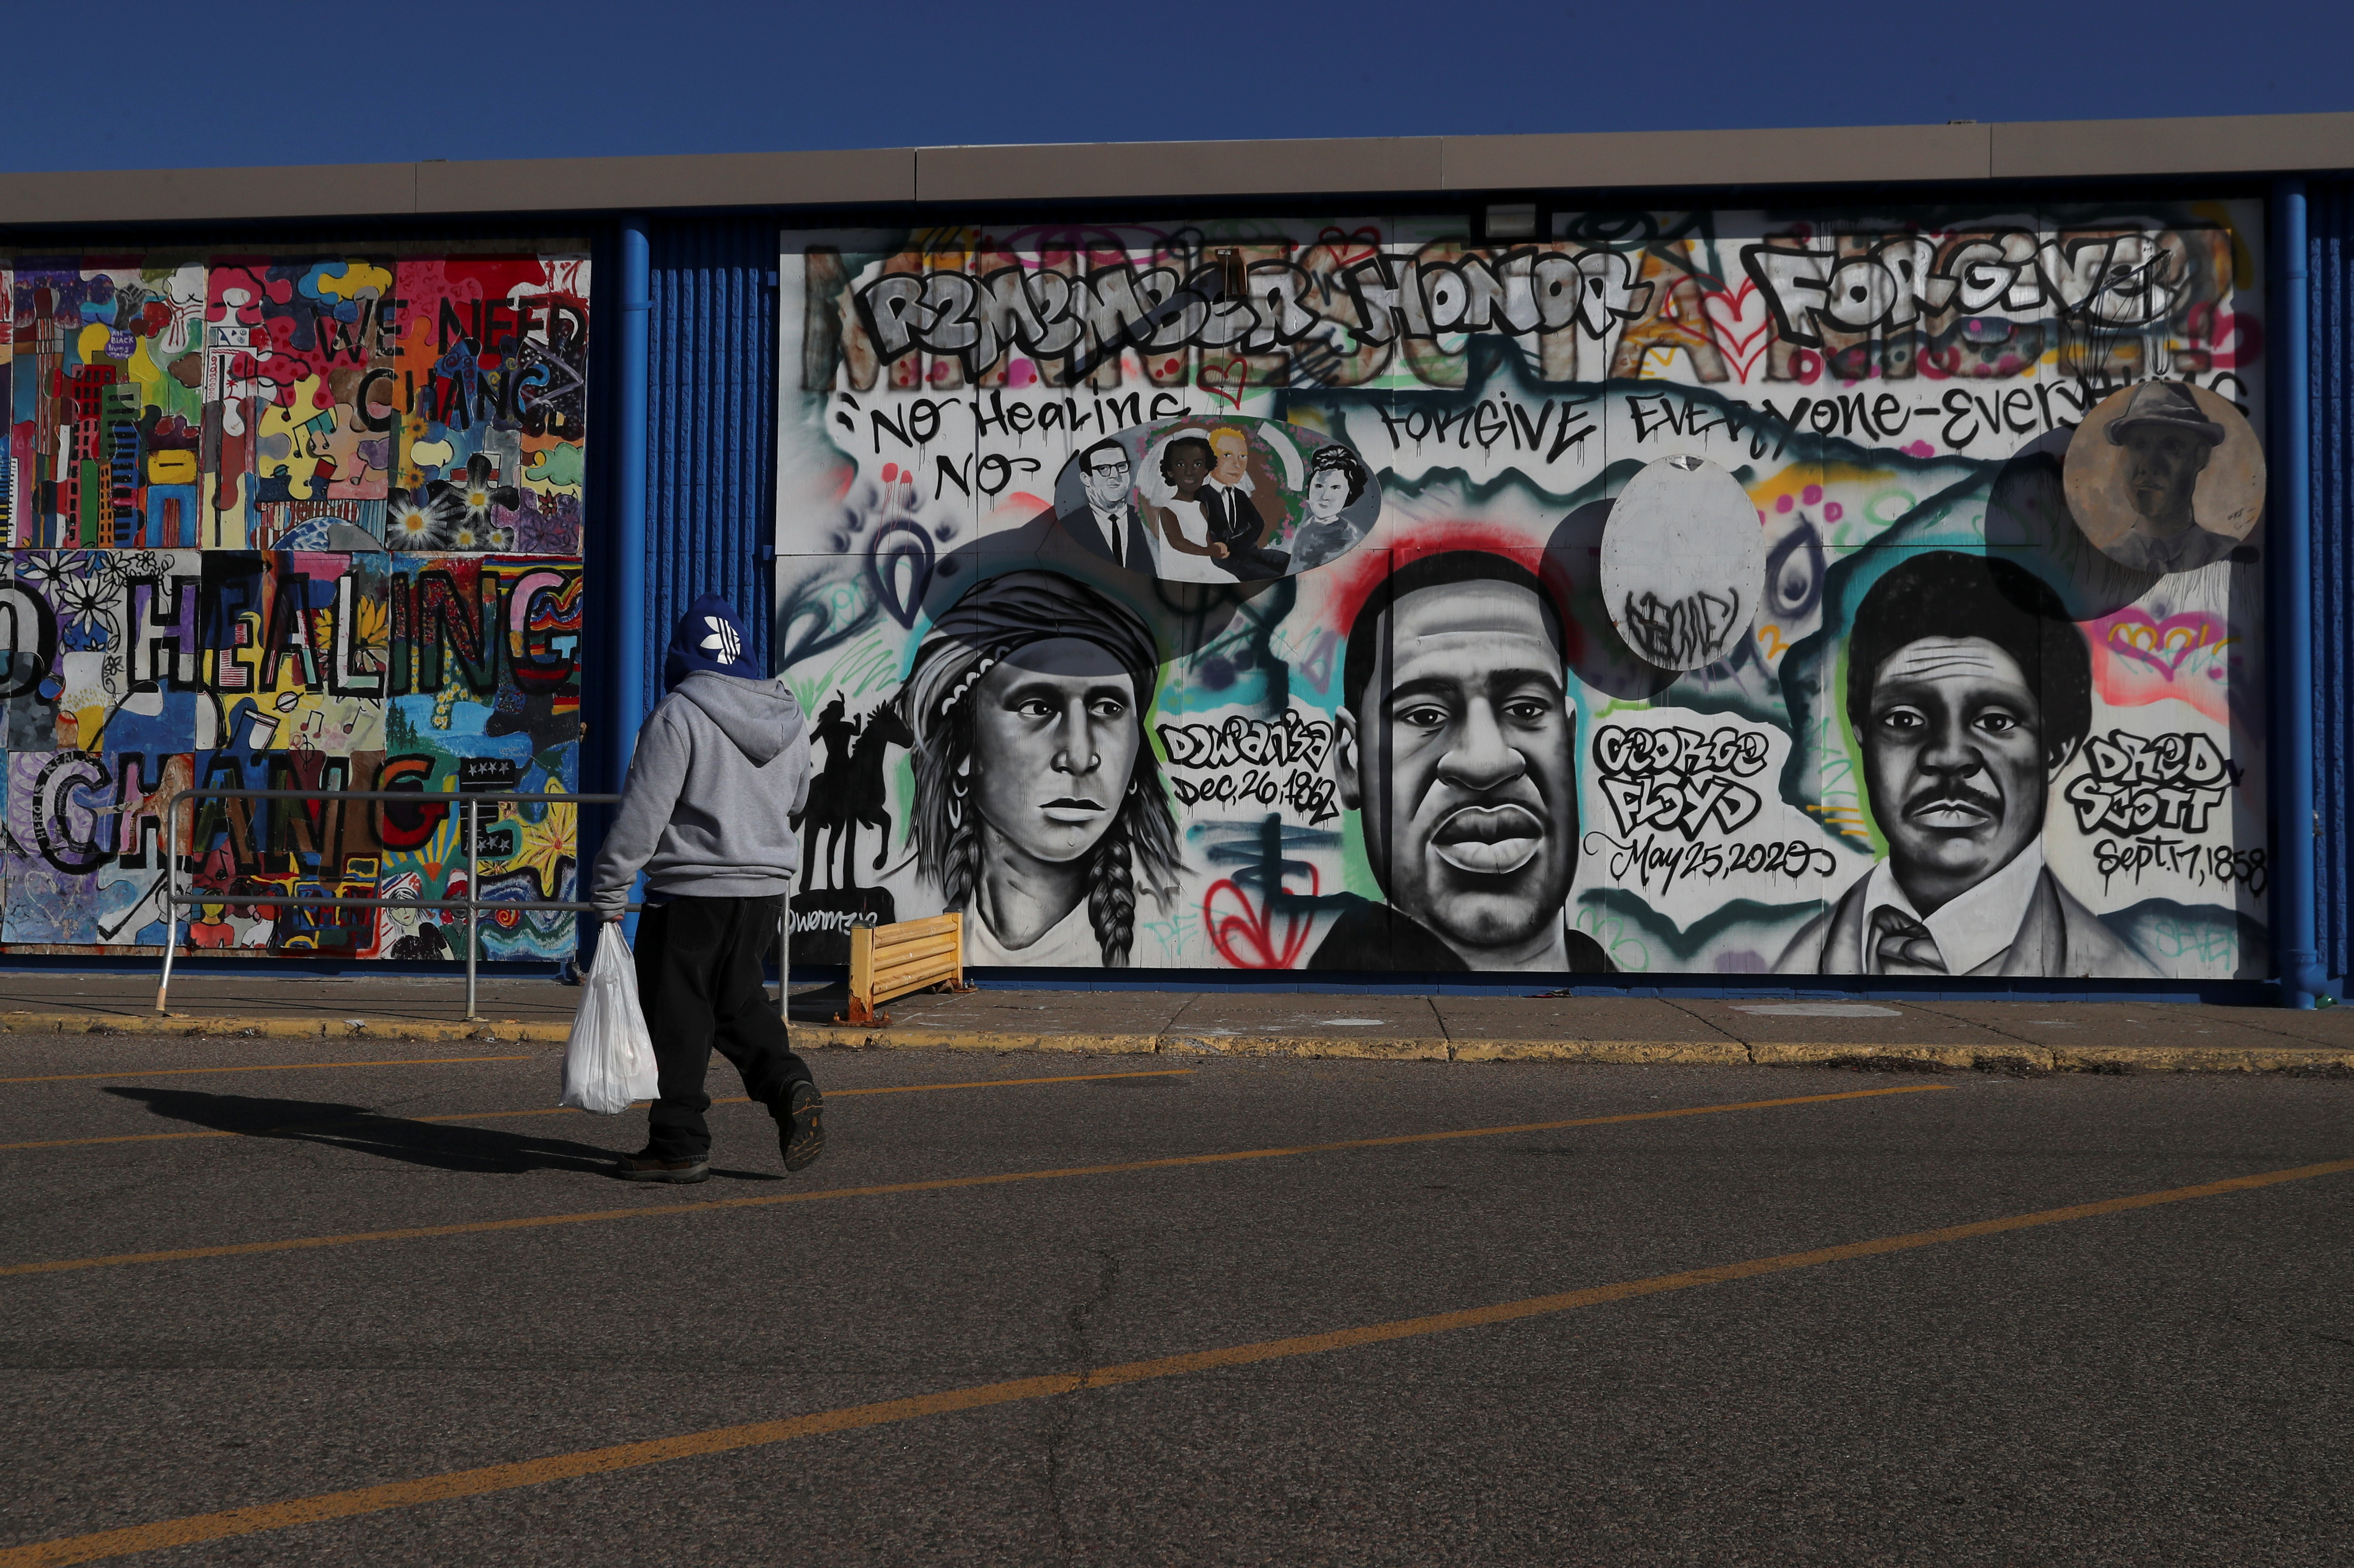 A pedestrian walks past community murals painted on the side of what was the Lake Street Kmart, which was destroyed in the wake of George Floyd's death, as jury selection continues in the trial of former Minneapolis police officer Derek Chauvin, on murder charges in the death of George Floyd in Minneapolis, Minnesota, U.S., March 12, 2021. Picture taken March 12, 2021. REUTERS/Leah Millis